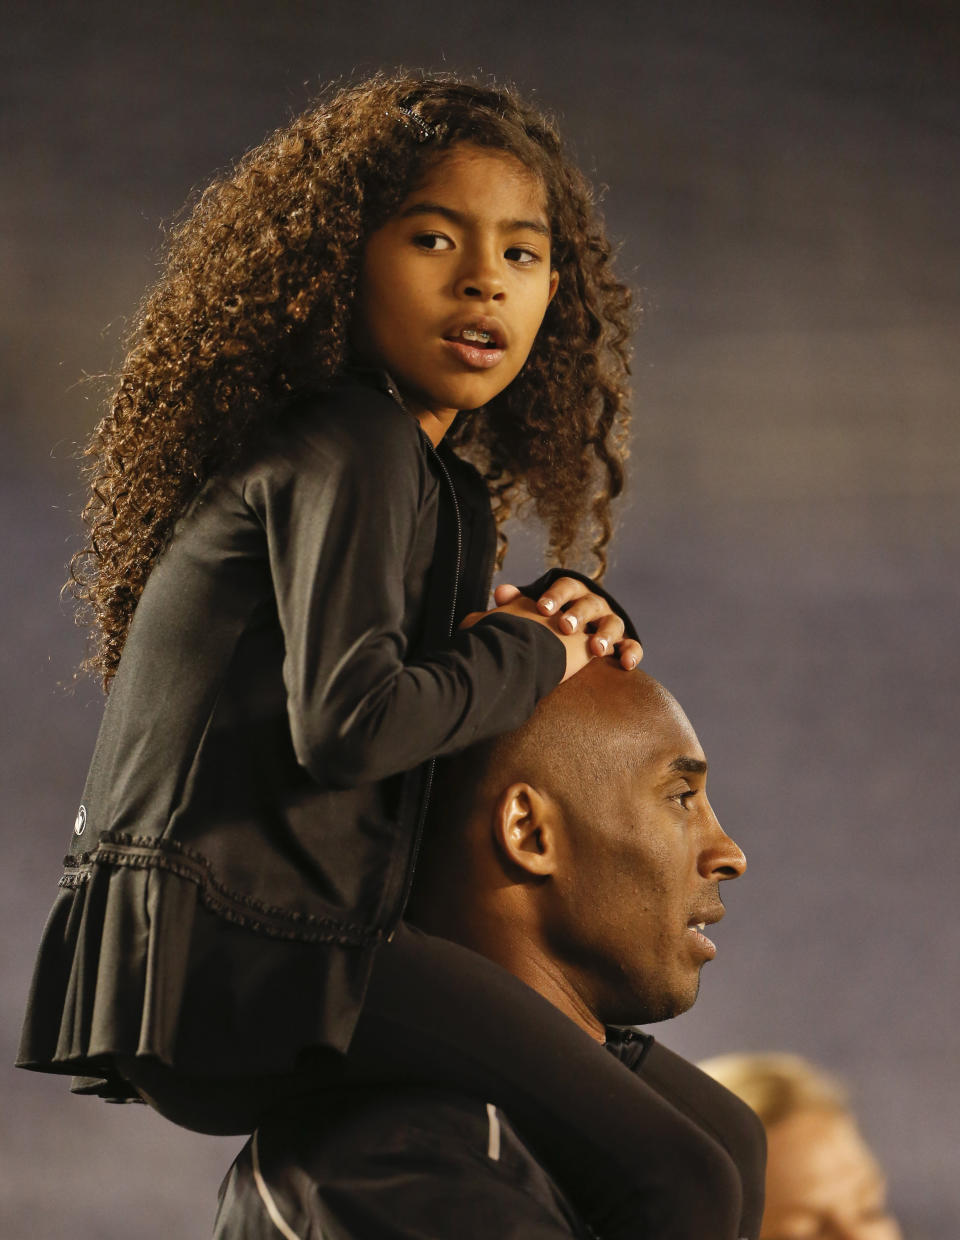 Gianna Maria-Onore Bryant sits on the shoulders of her father, Kobe, as they attend the women's soccer match between the United States and China Thursday, April 10, 2014, in San Diego. Bryant, the 18-time NBA All-Star who won five championships and became one of the greatest basketball players of his generation during a 20-year career with the Los Angeles Lakers, died in a helicopter crash Sunday, Jan. 26, 2020. Gianna also died in the crash. (AP Photo/Lenny Ignelzi, file)